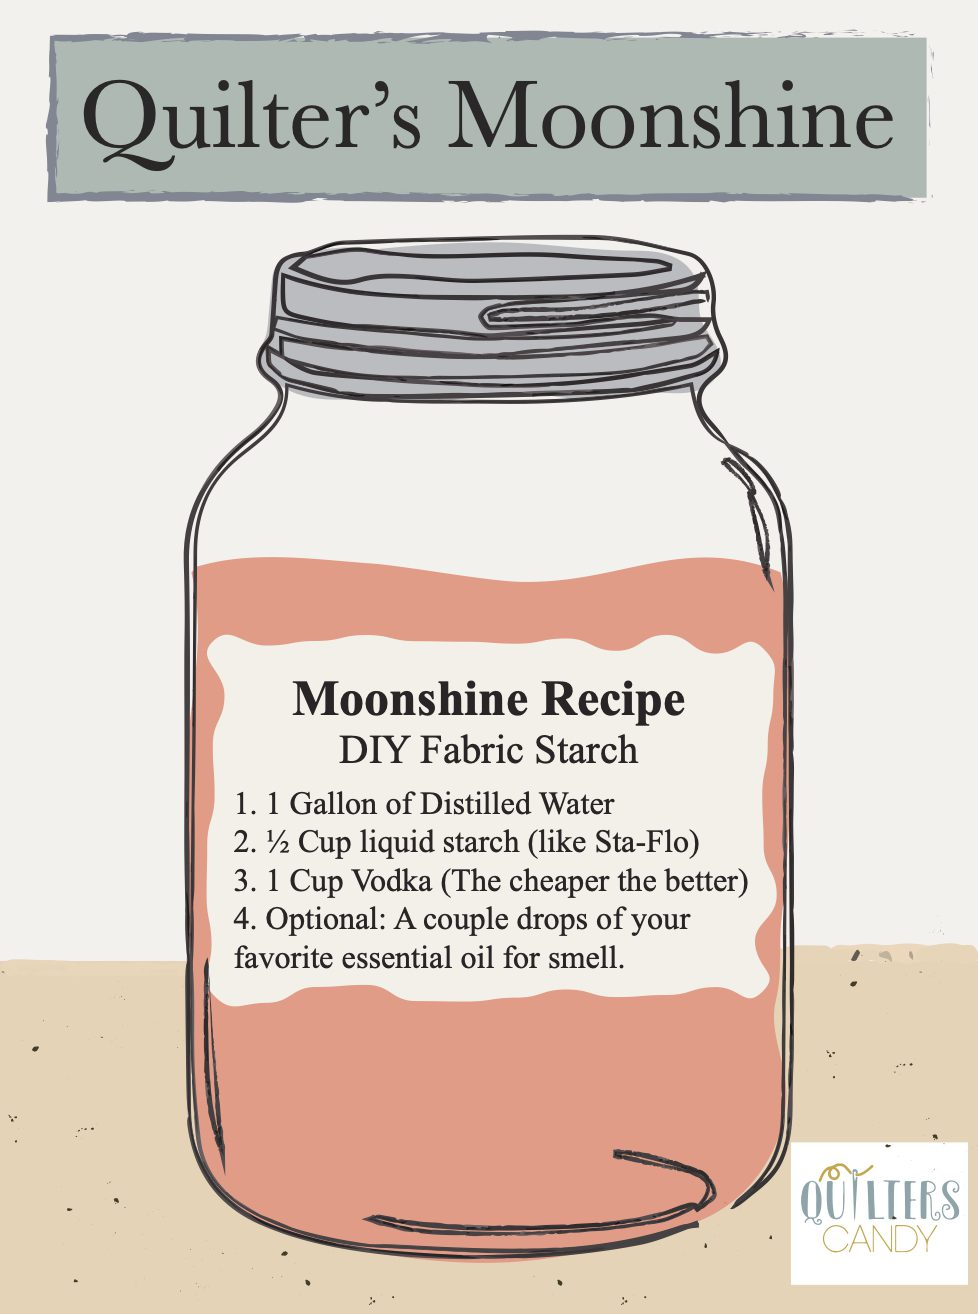 Quilter's Moonshine or DIY Fabric Starch ingredients